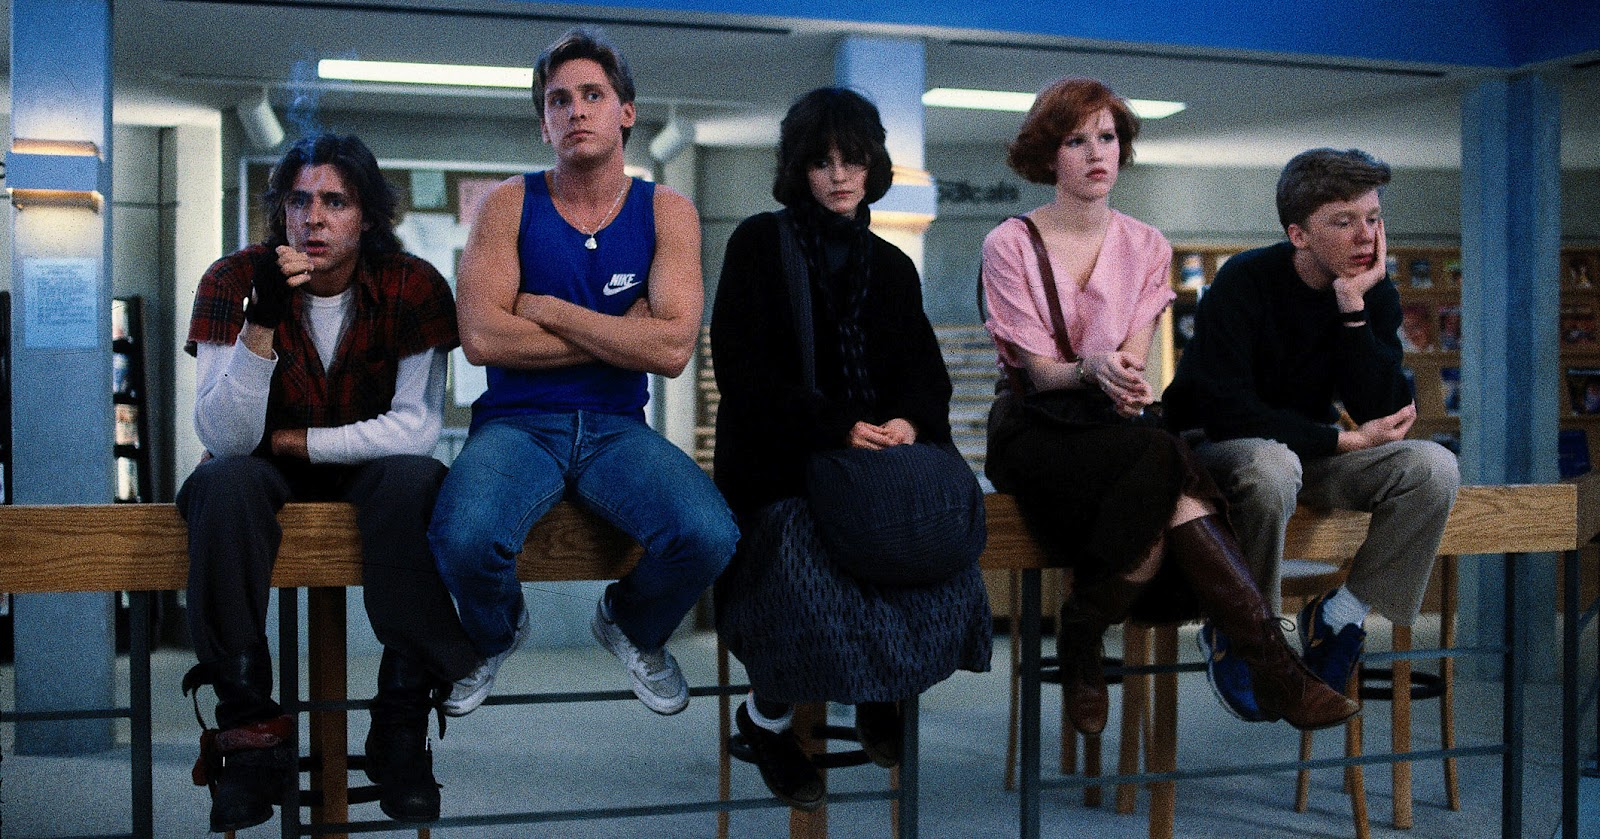 breakfast club perception The breakfast club multimedia 10 this site will discuss the film the breakfast club and connect the characters and themes from the film to interpersonal communication topics, such as gender, conversation, and emotion.